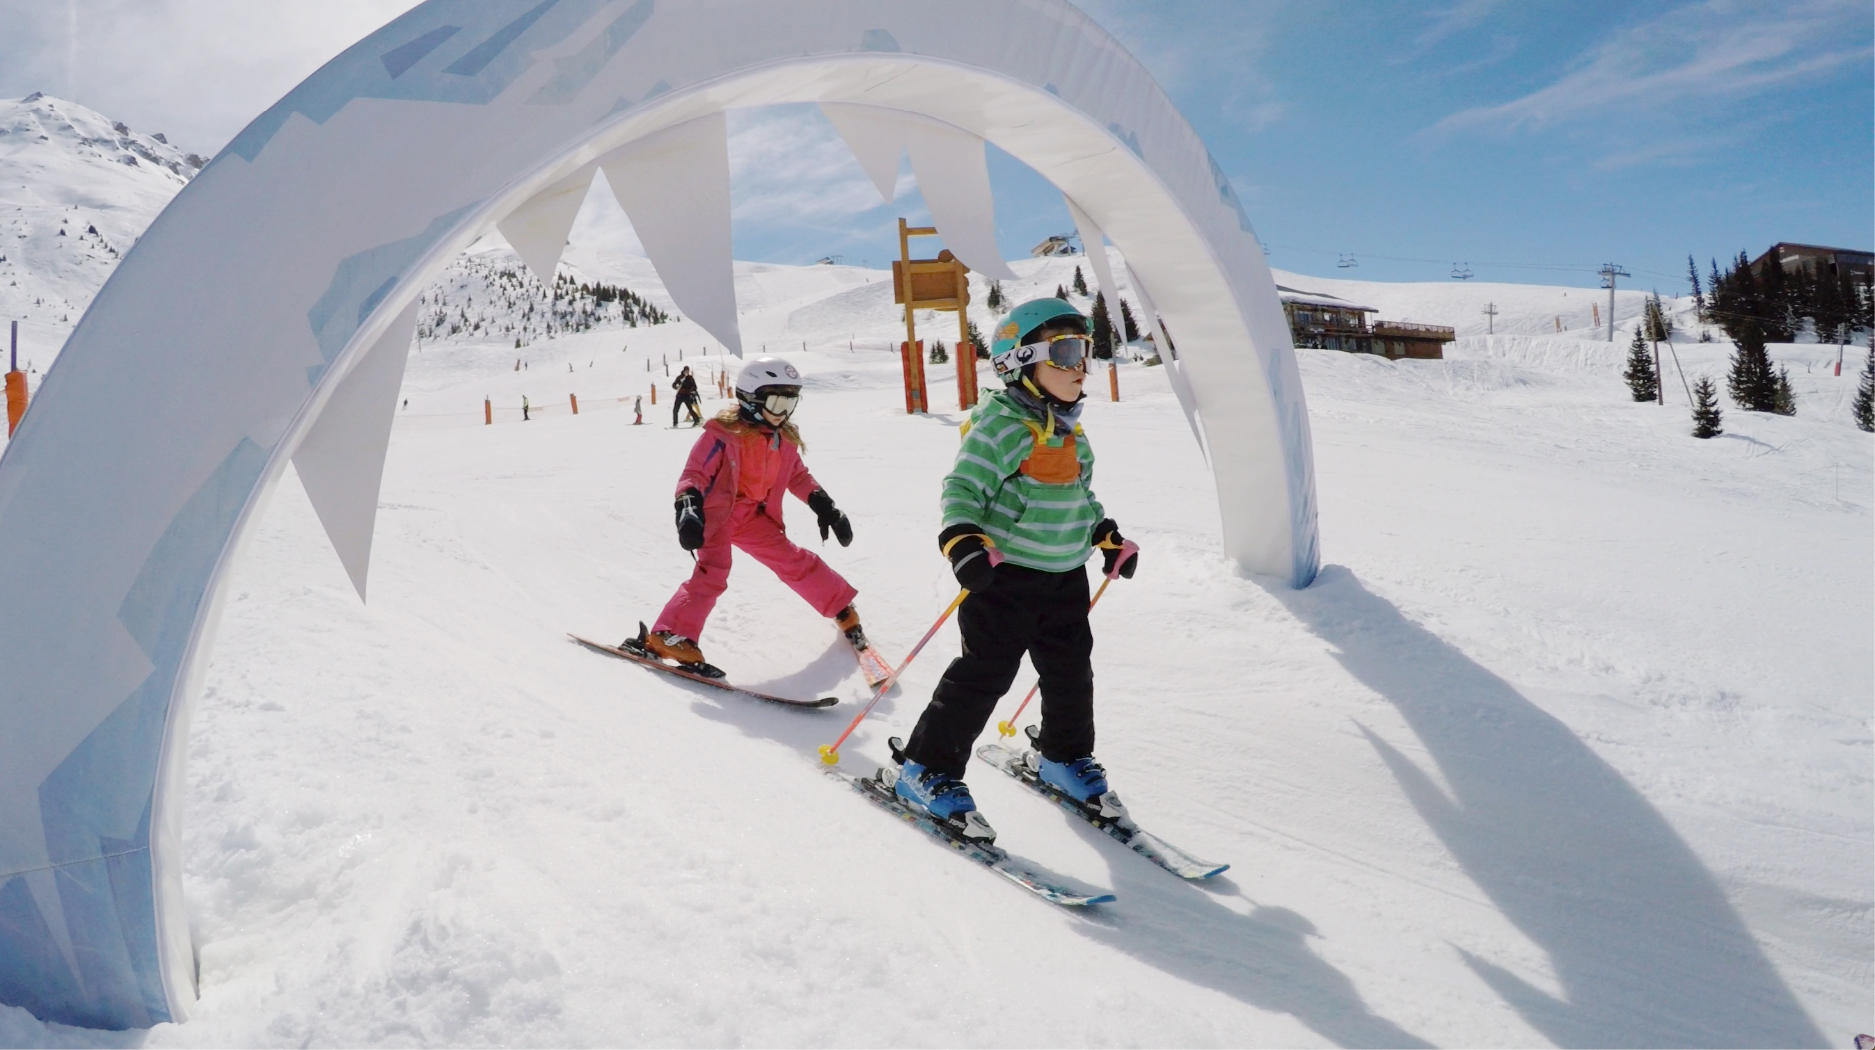 two children having fun skiing under an arch during ski lessons